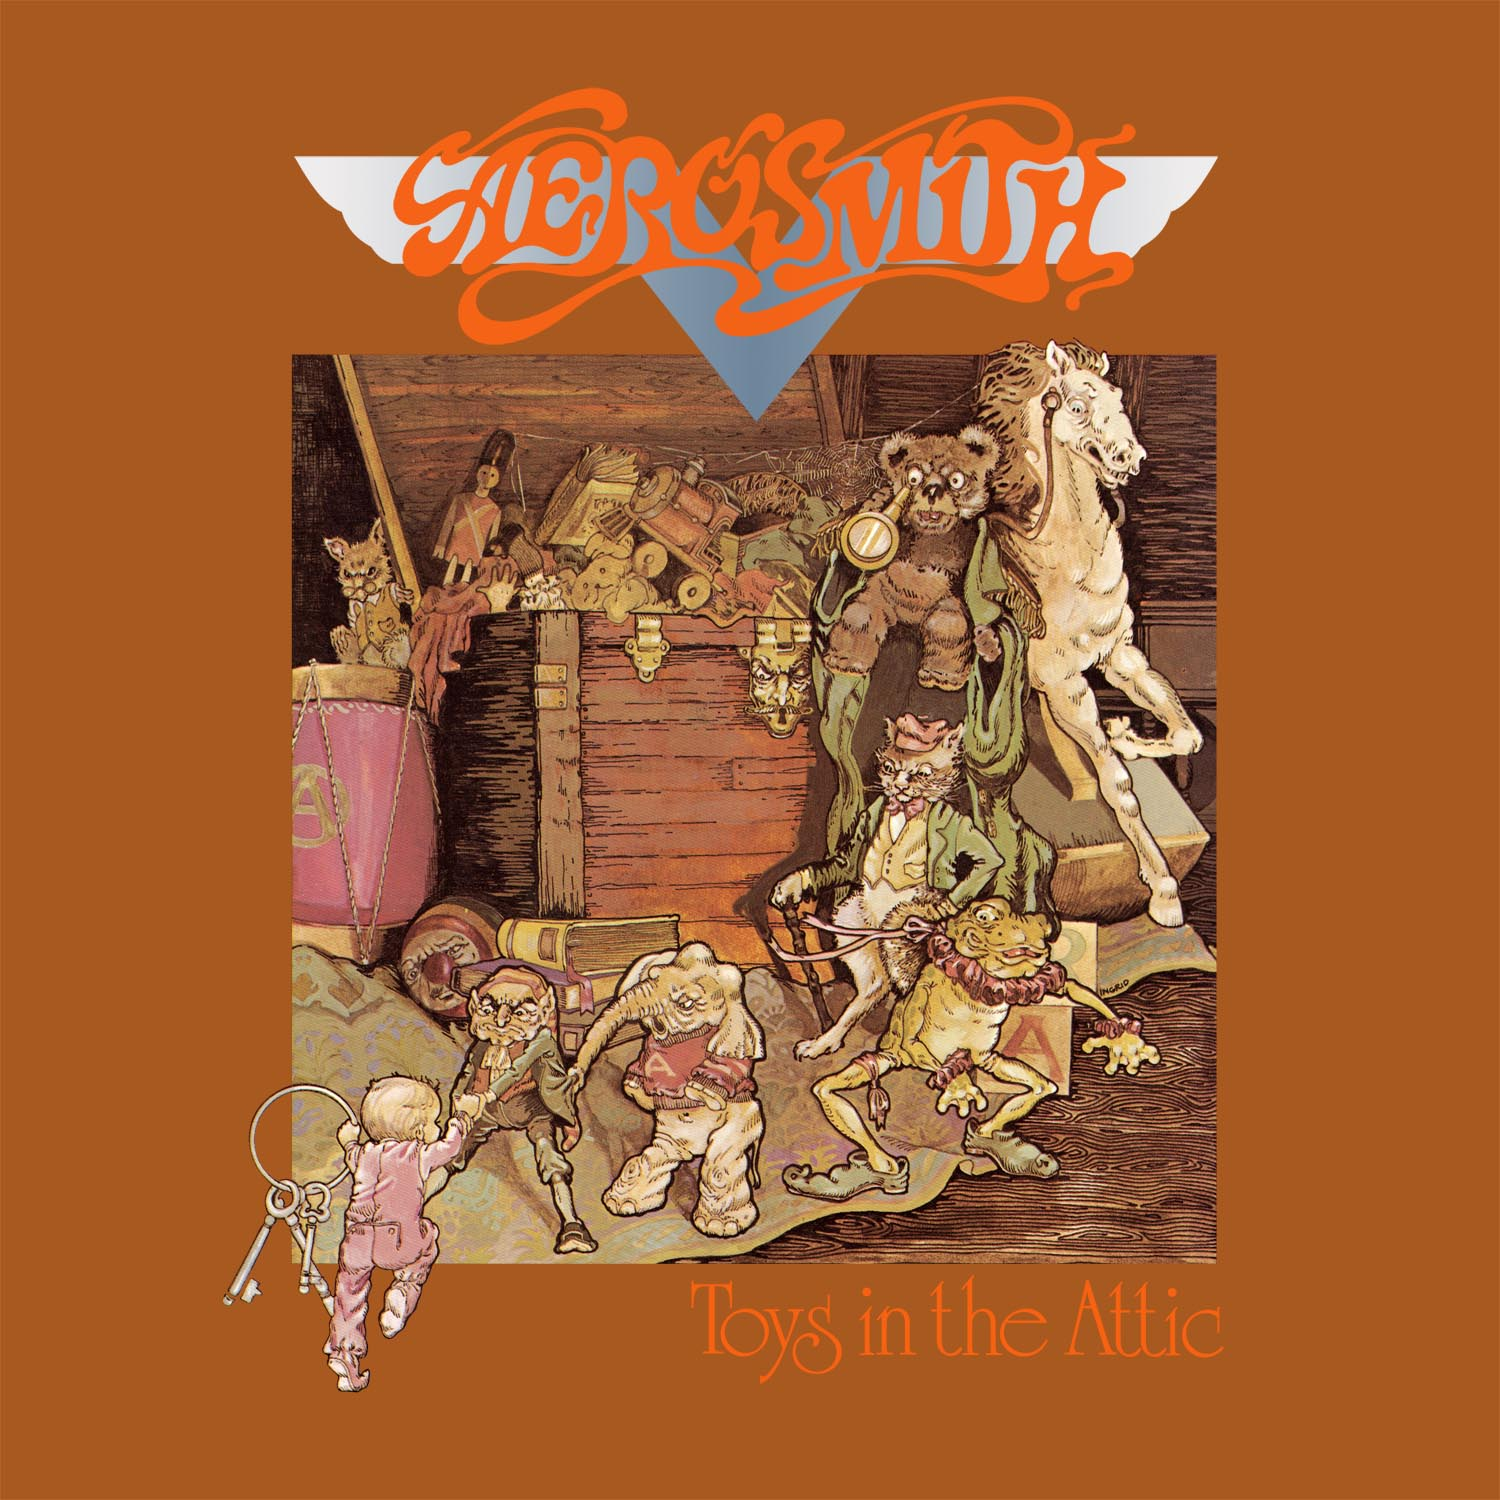 Aerosmith - Toys in the Attic (from You Gotta Move) - YouTube